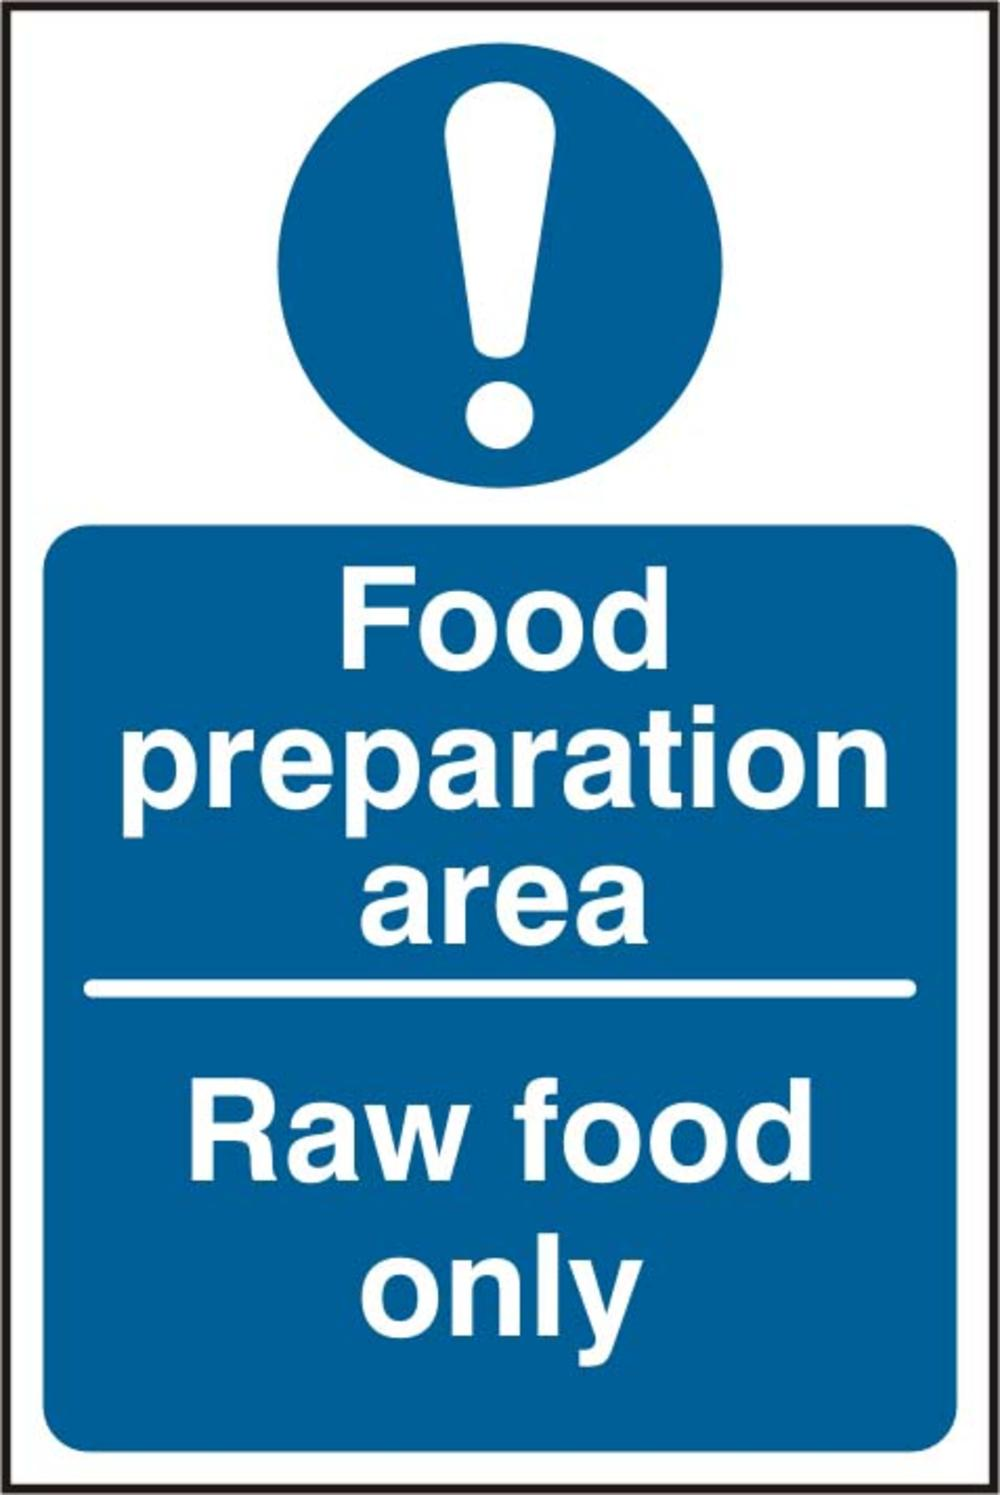 food preparation area raw food only rigid pvc x mm sign food preparation area raw food only rigid pvc 100 x 150mm sign